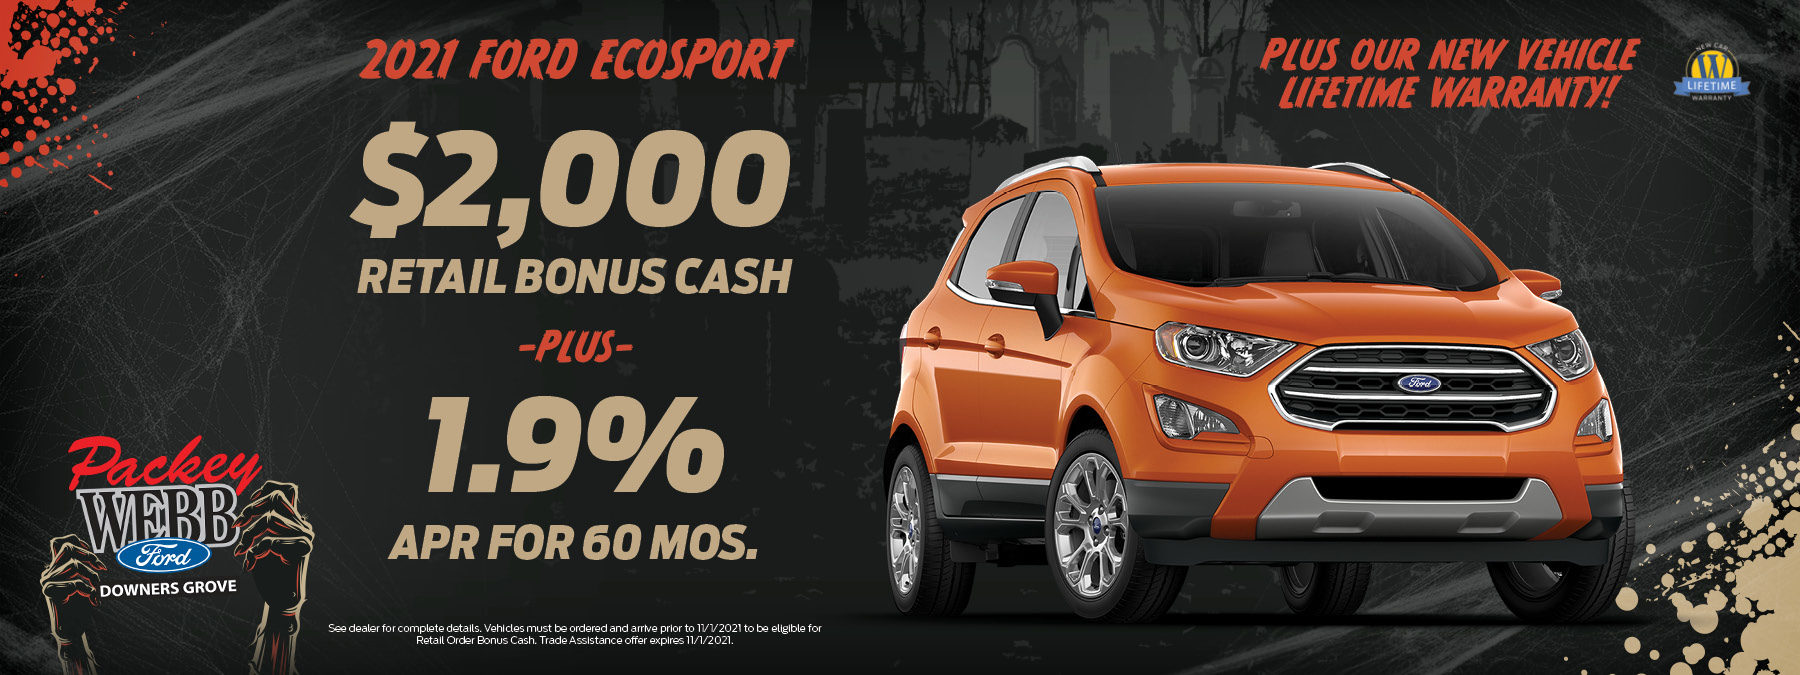 2021 Ford EcoSport   Packey Webb Ford   Downers Grove, IL